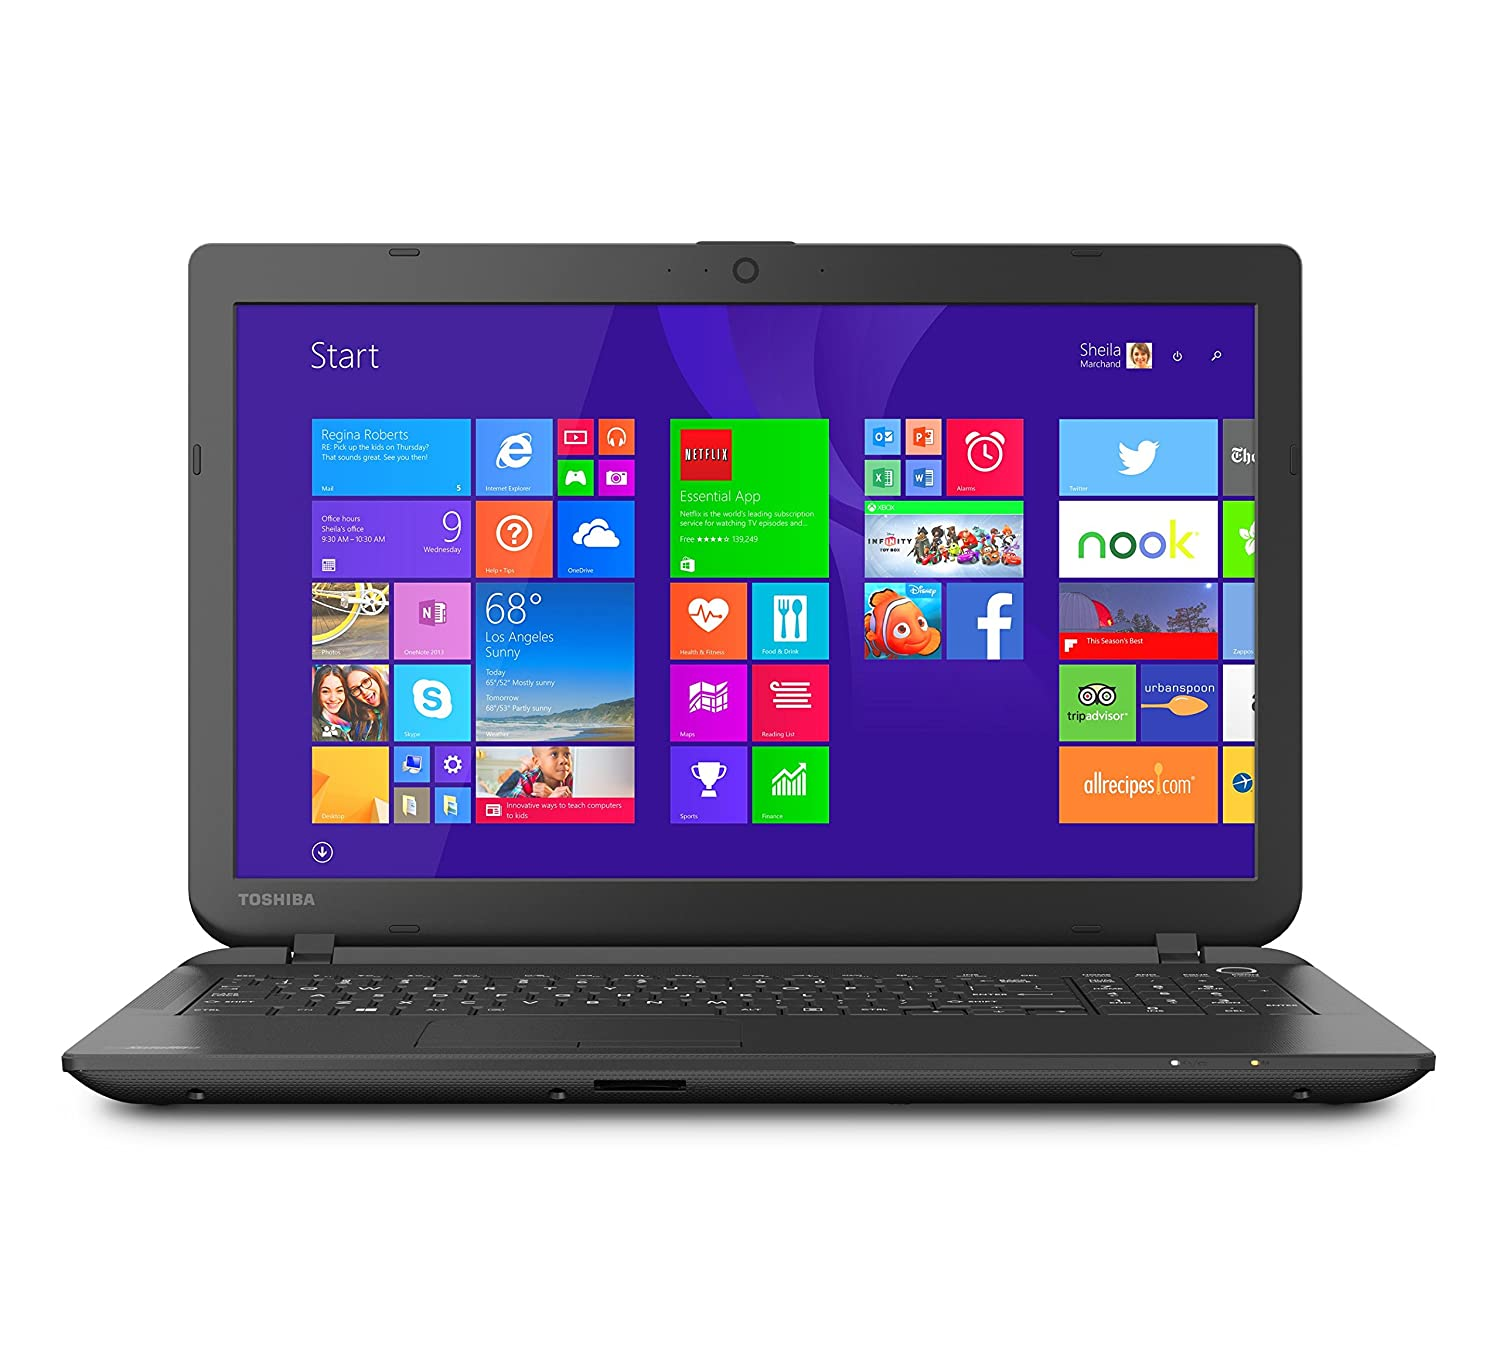 Toshiba-Satellite-C55-B5298-15-6-inch-Laptop-2-1-GHz-Intel-Celeron-N2830-Processor-4GB-DIMM-500GB-HDD-Windows-8-1-Jet-Black